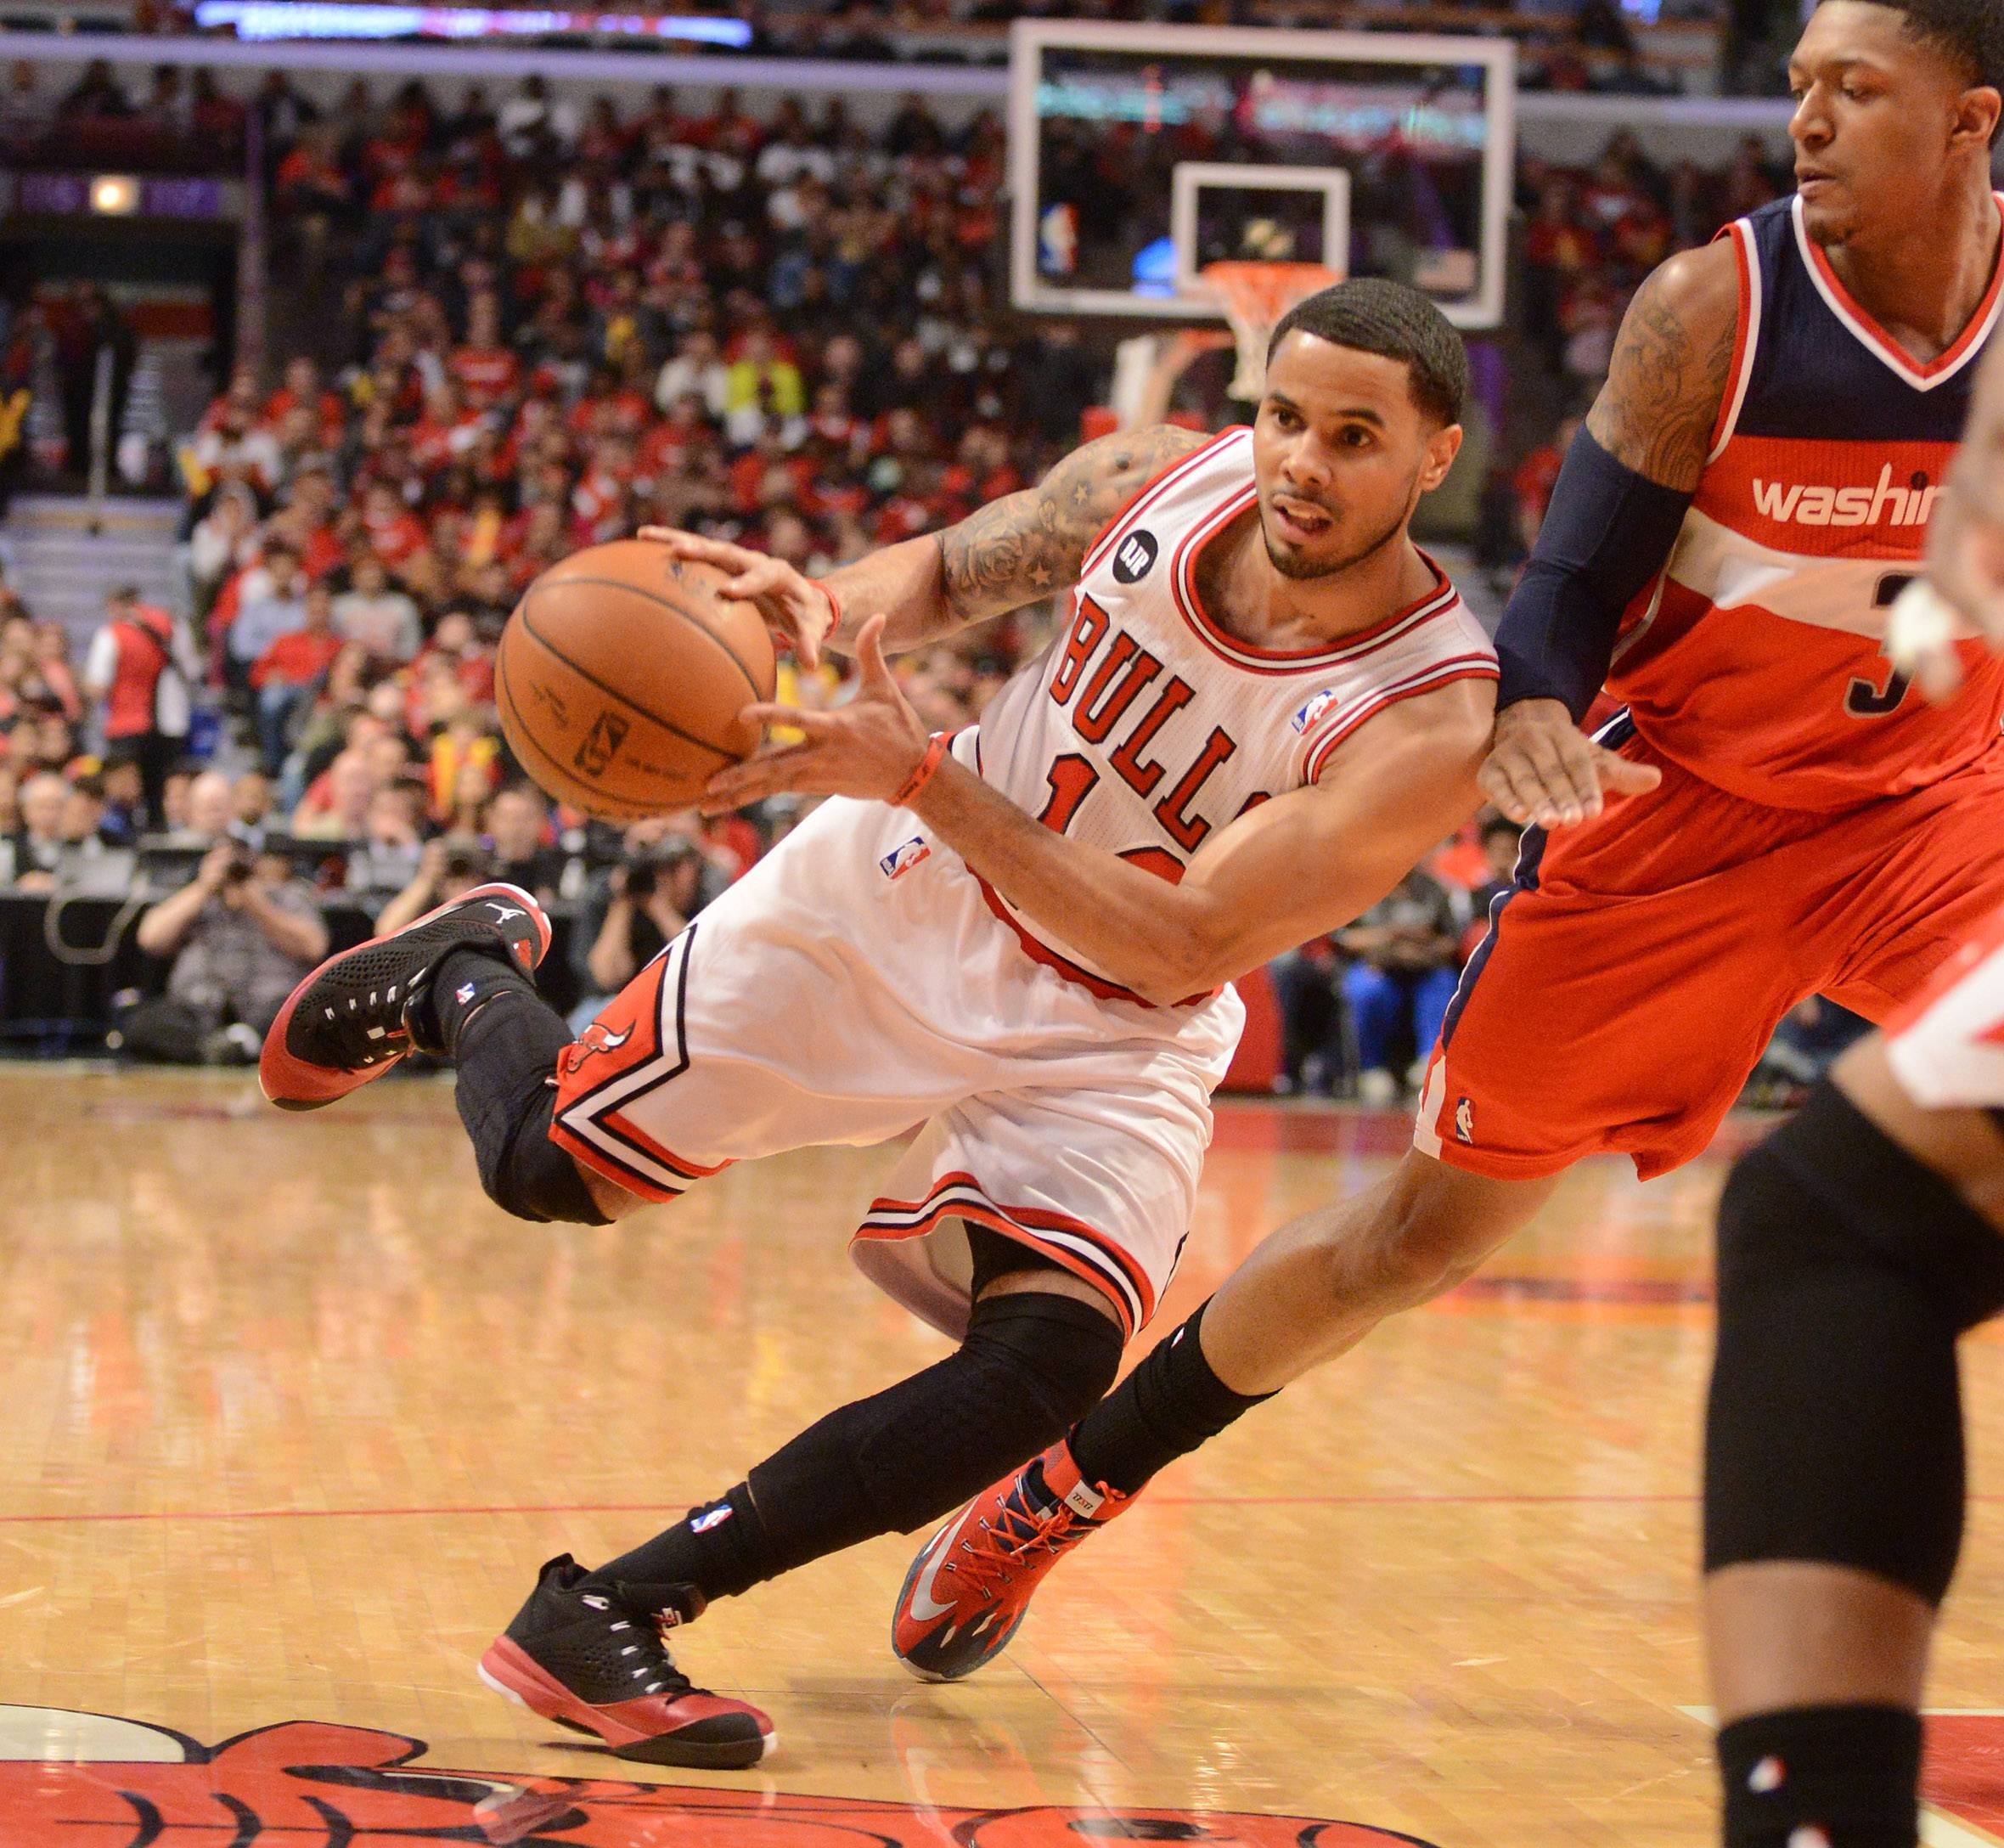 Chicago Bulls guard D.J. Augustin (14) looks to dish the ball off.